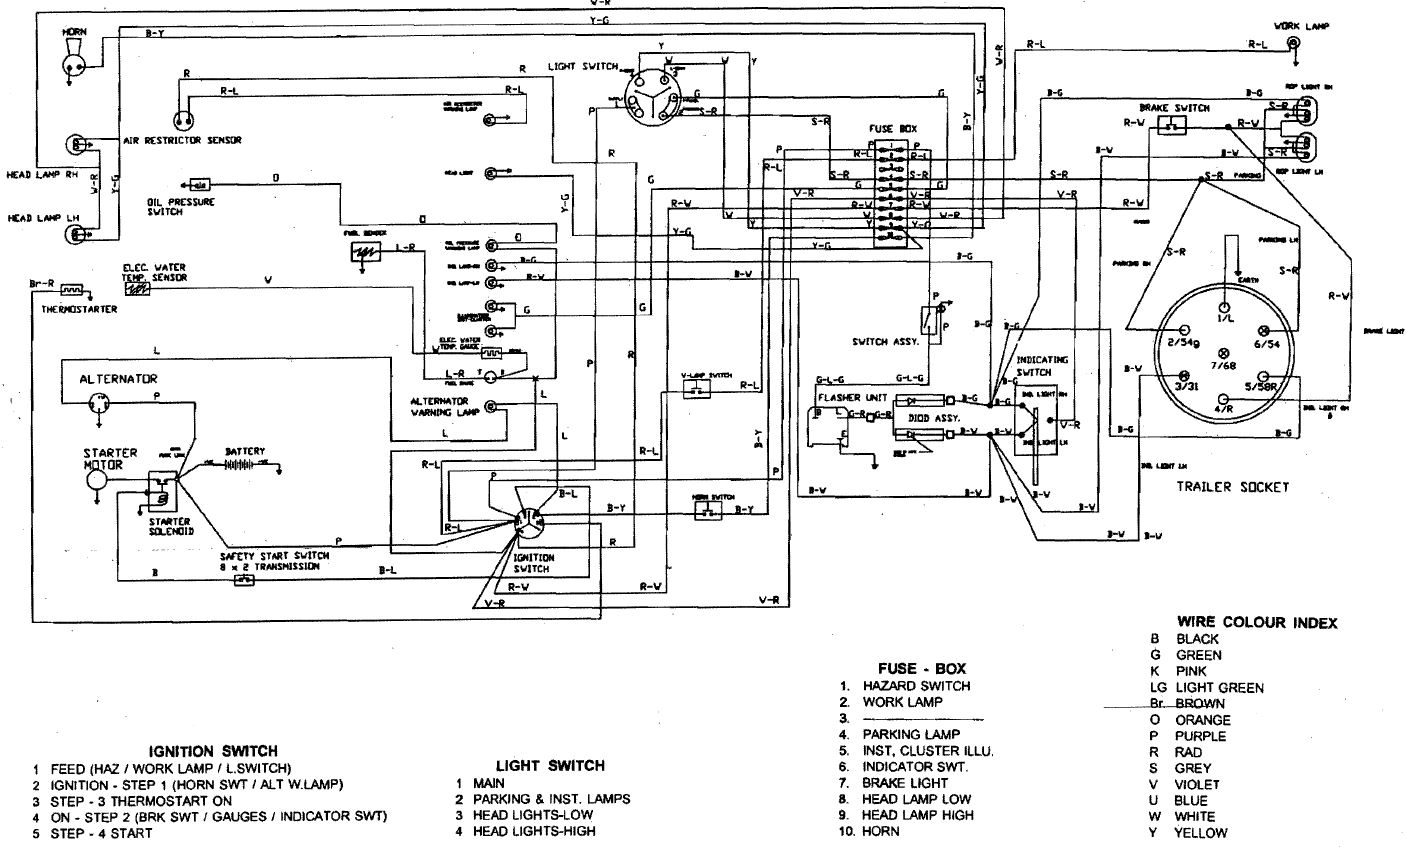 ignition switch wiring diagram Ignition Switch Diagram re ignition switch wiring diagram hopefully this helps ignition switch diagram